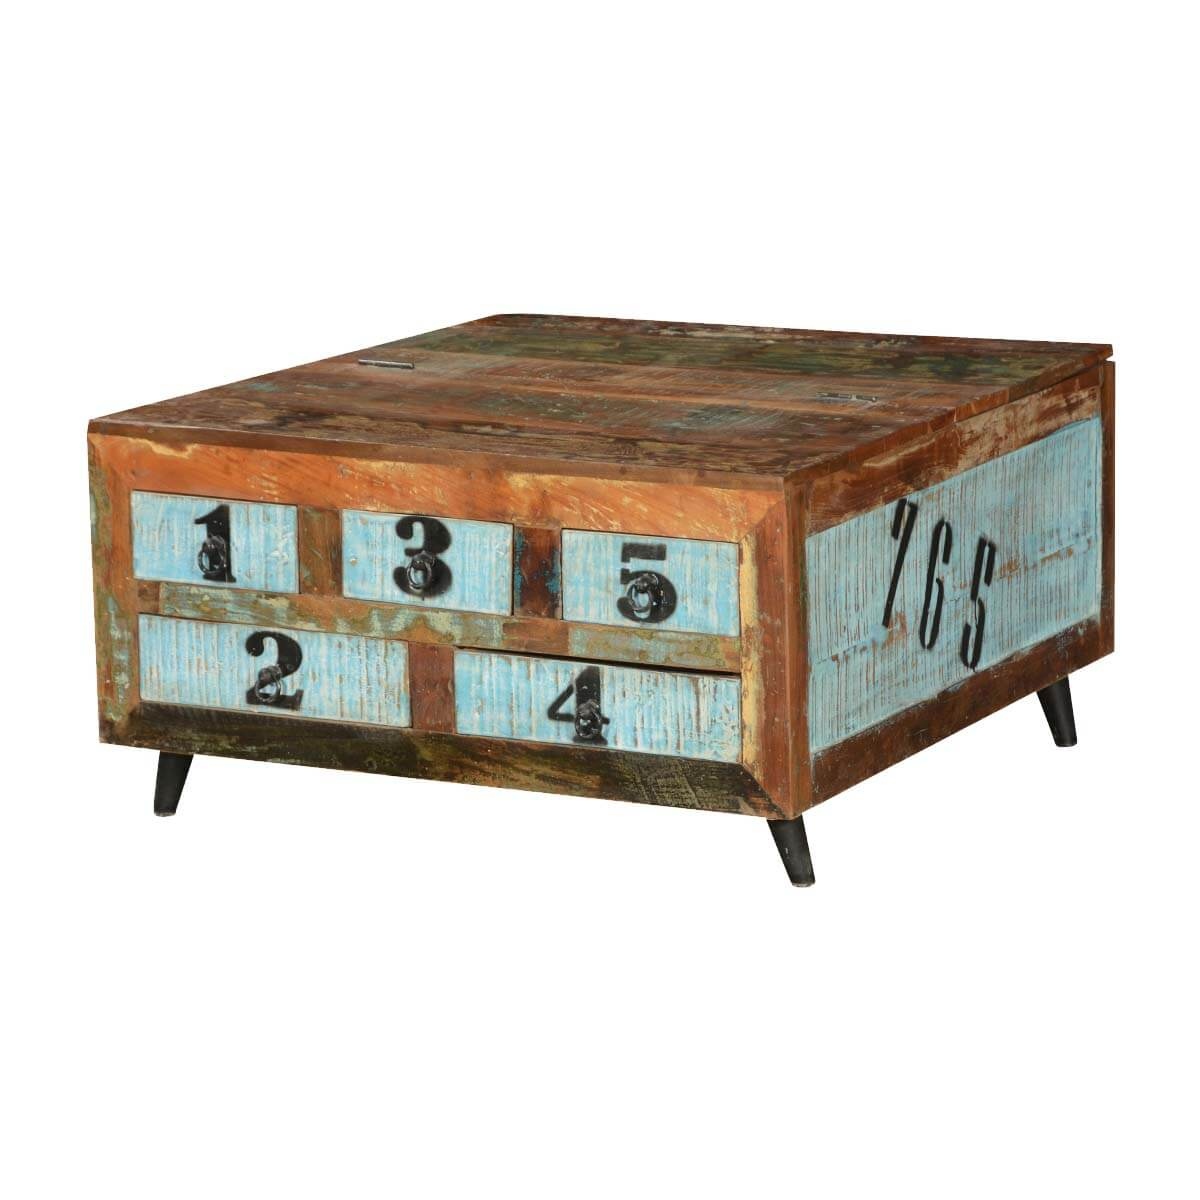 Elsmere Reclaimed Wood Standing 5 Drawer Square Coffee Table